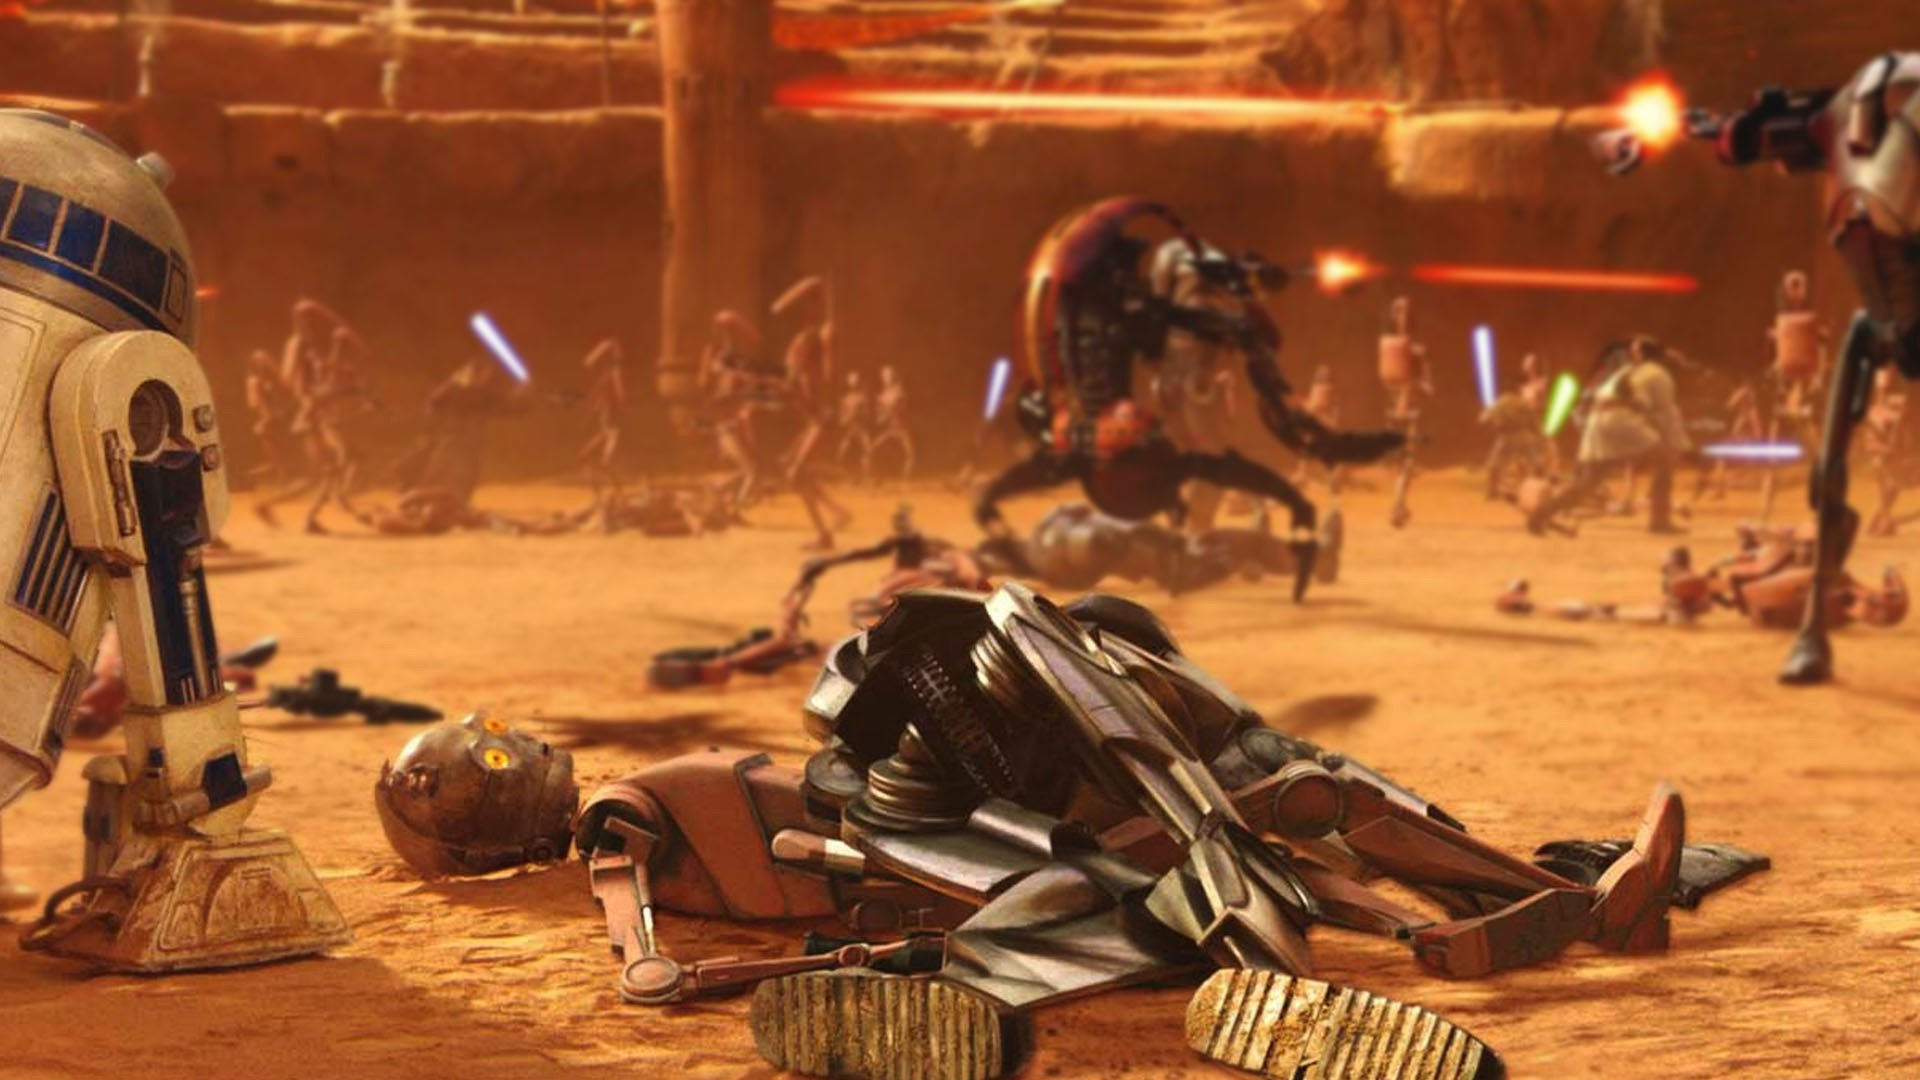 download star wars attack of the clones